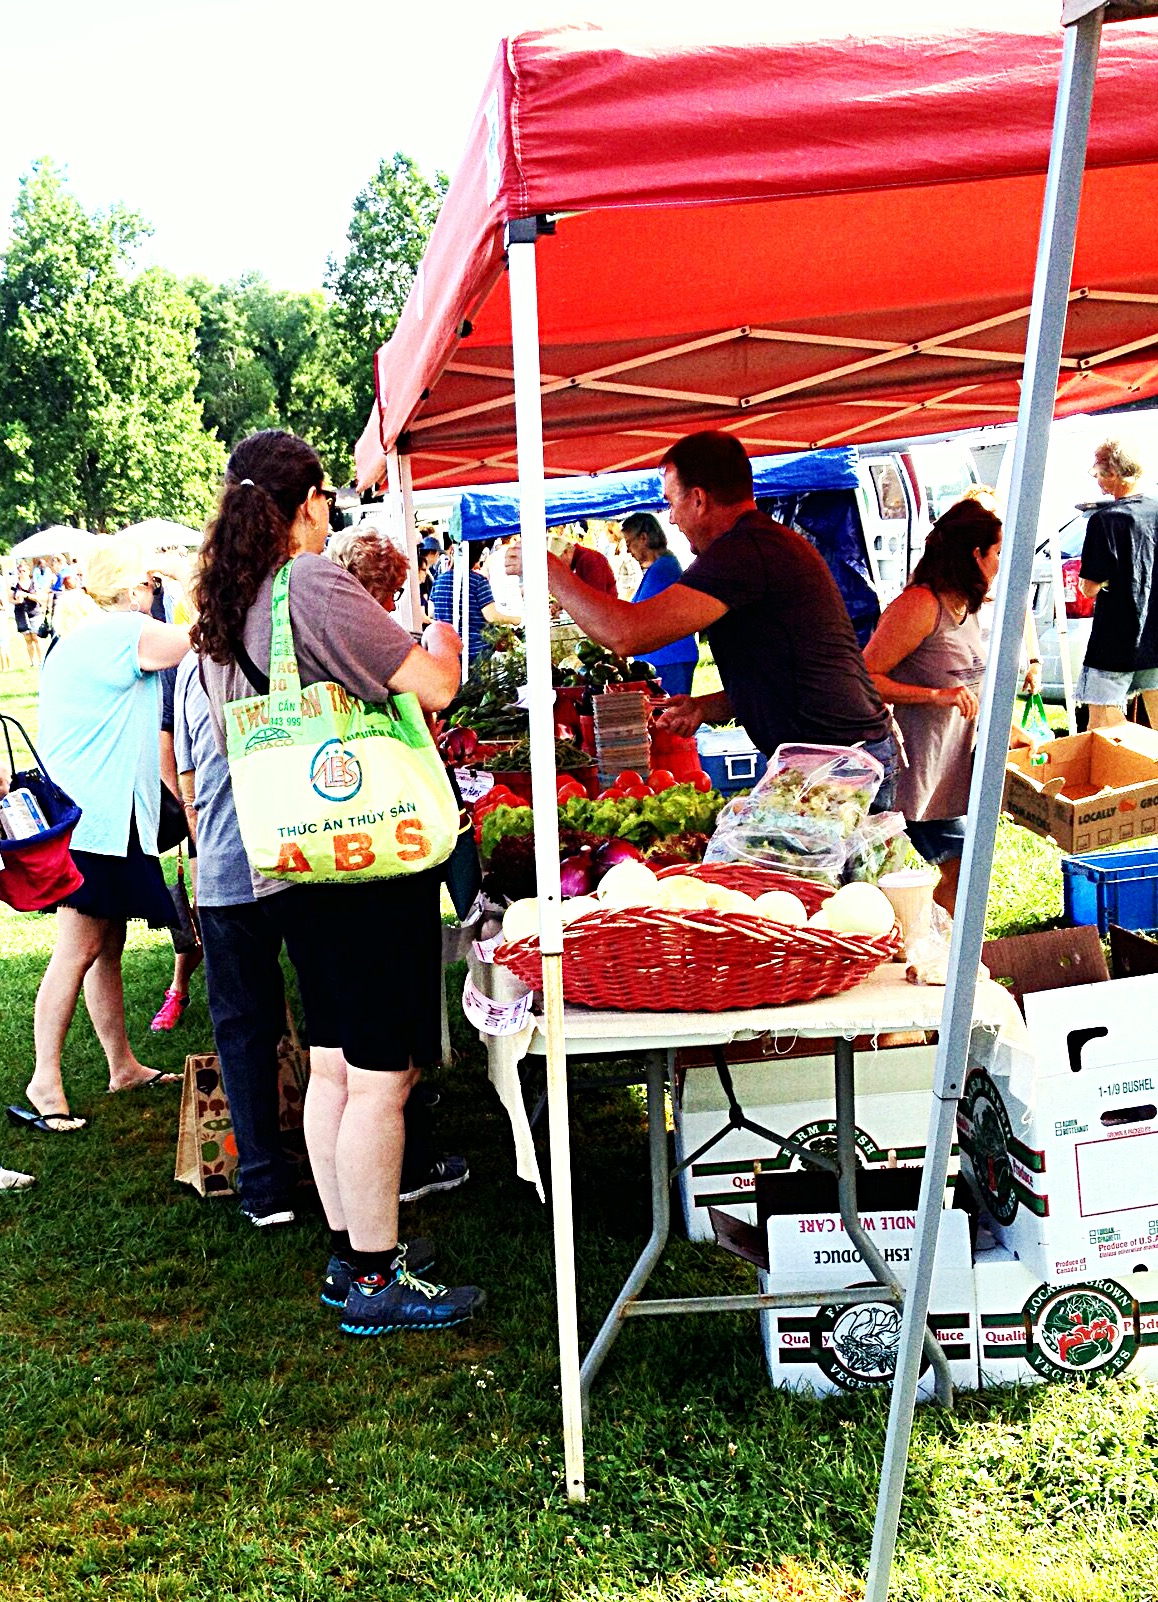 Photo of patrons buying veggies at farm stand